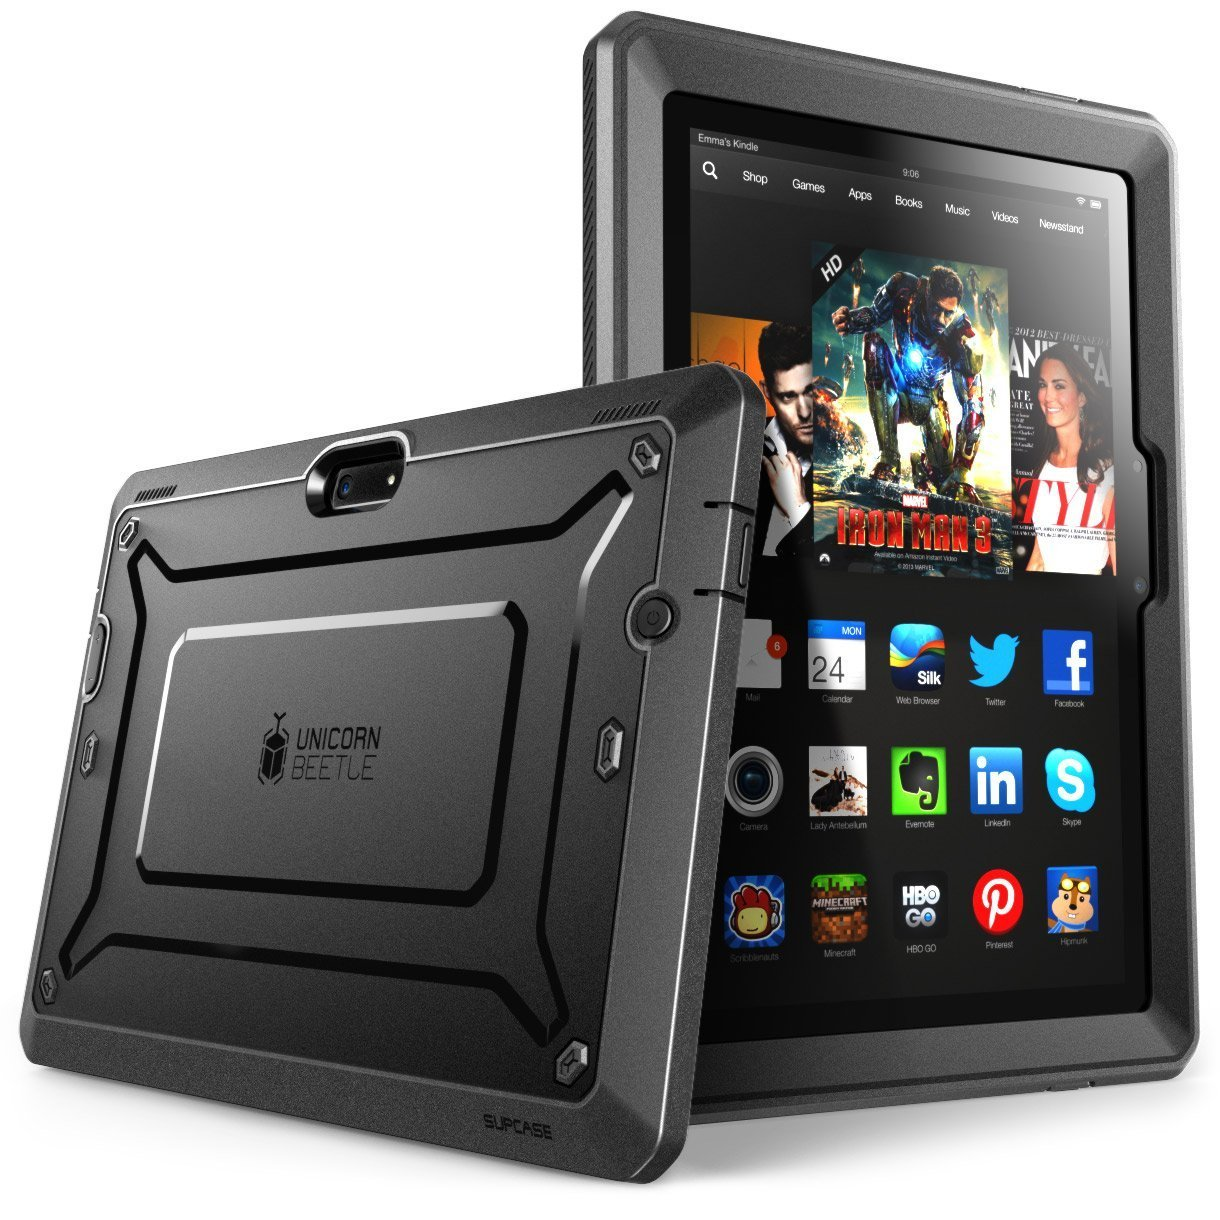 SUPCASE [Heavy Duty] Amazon Fire HDX 8.9 Case (4th